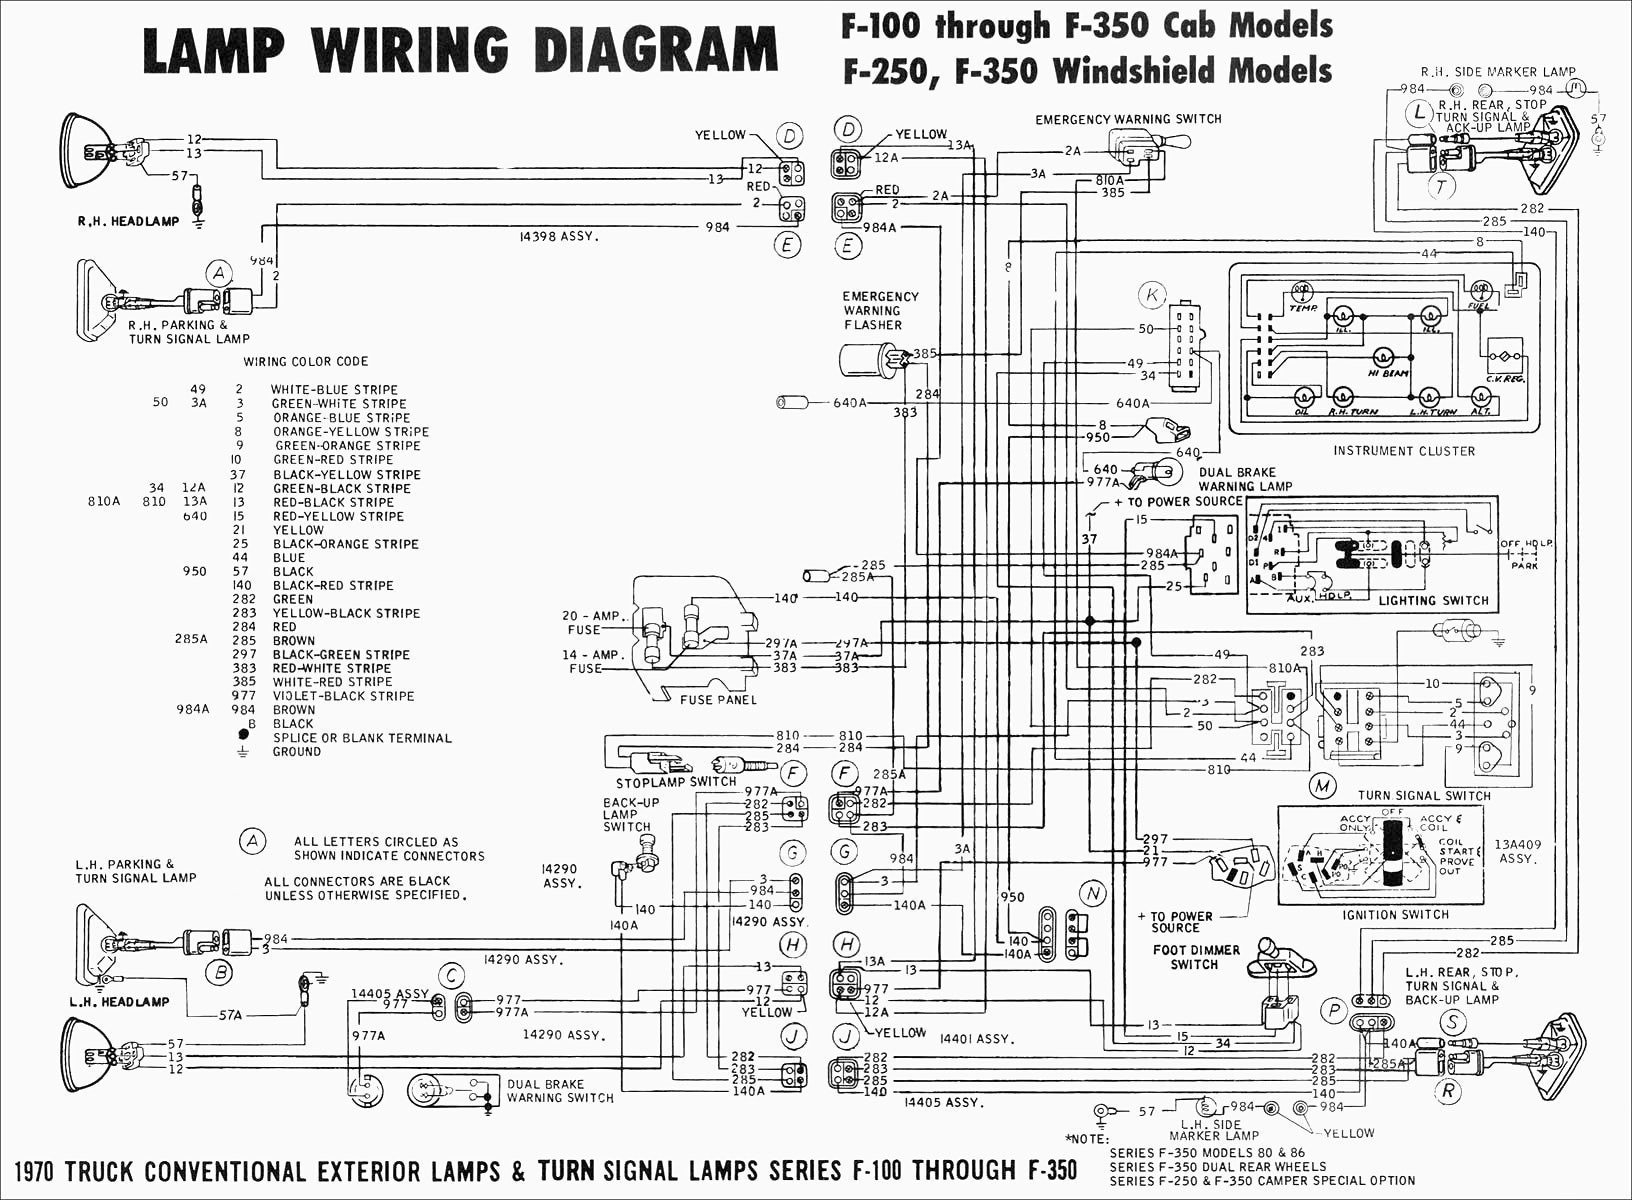 Current Pulse Generator Circuit Diagram Tradeoficcom - Wiring ... on